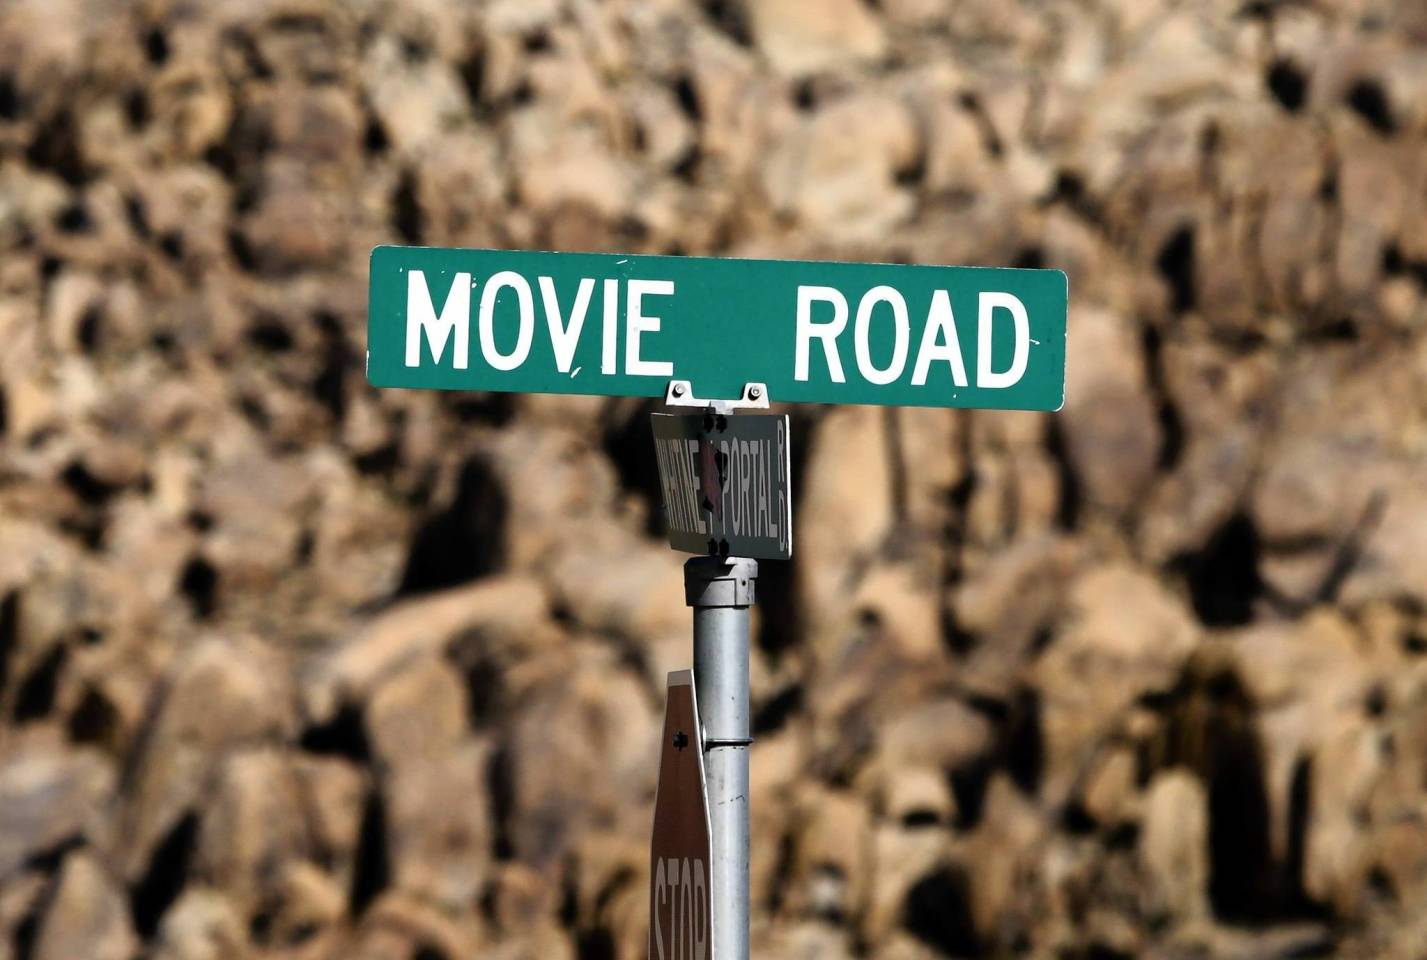 LA Times Photo of Movie Road, Inyo County